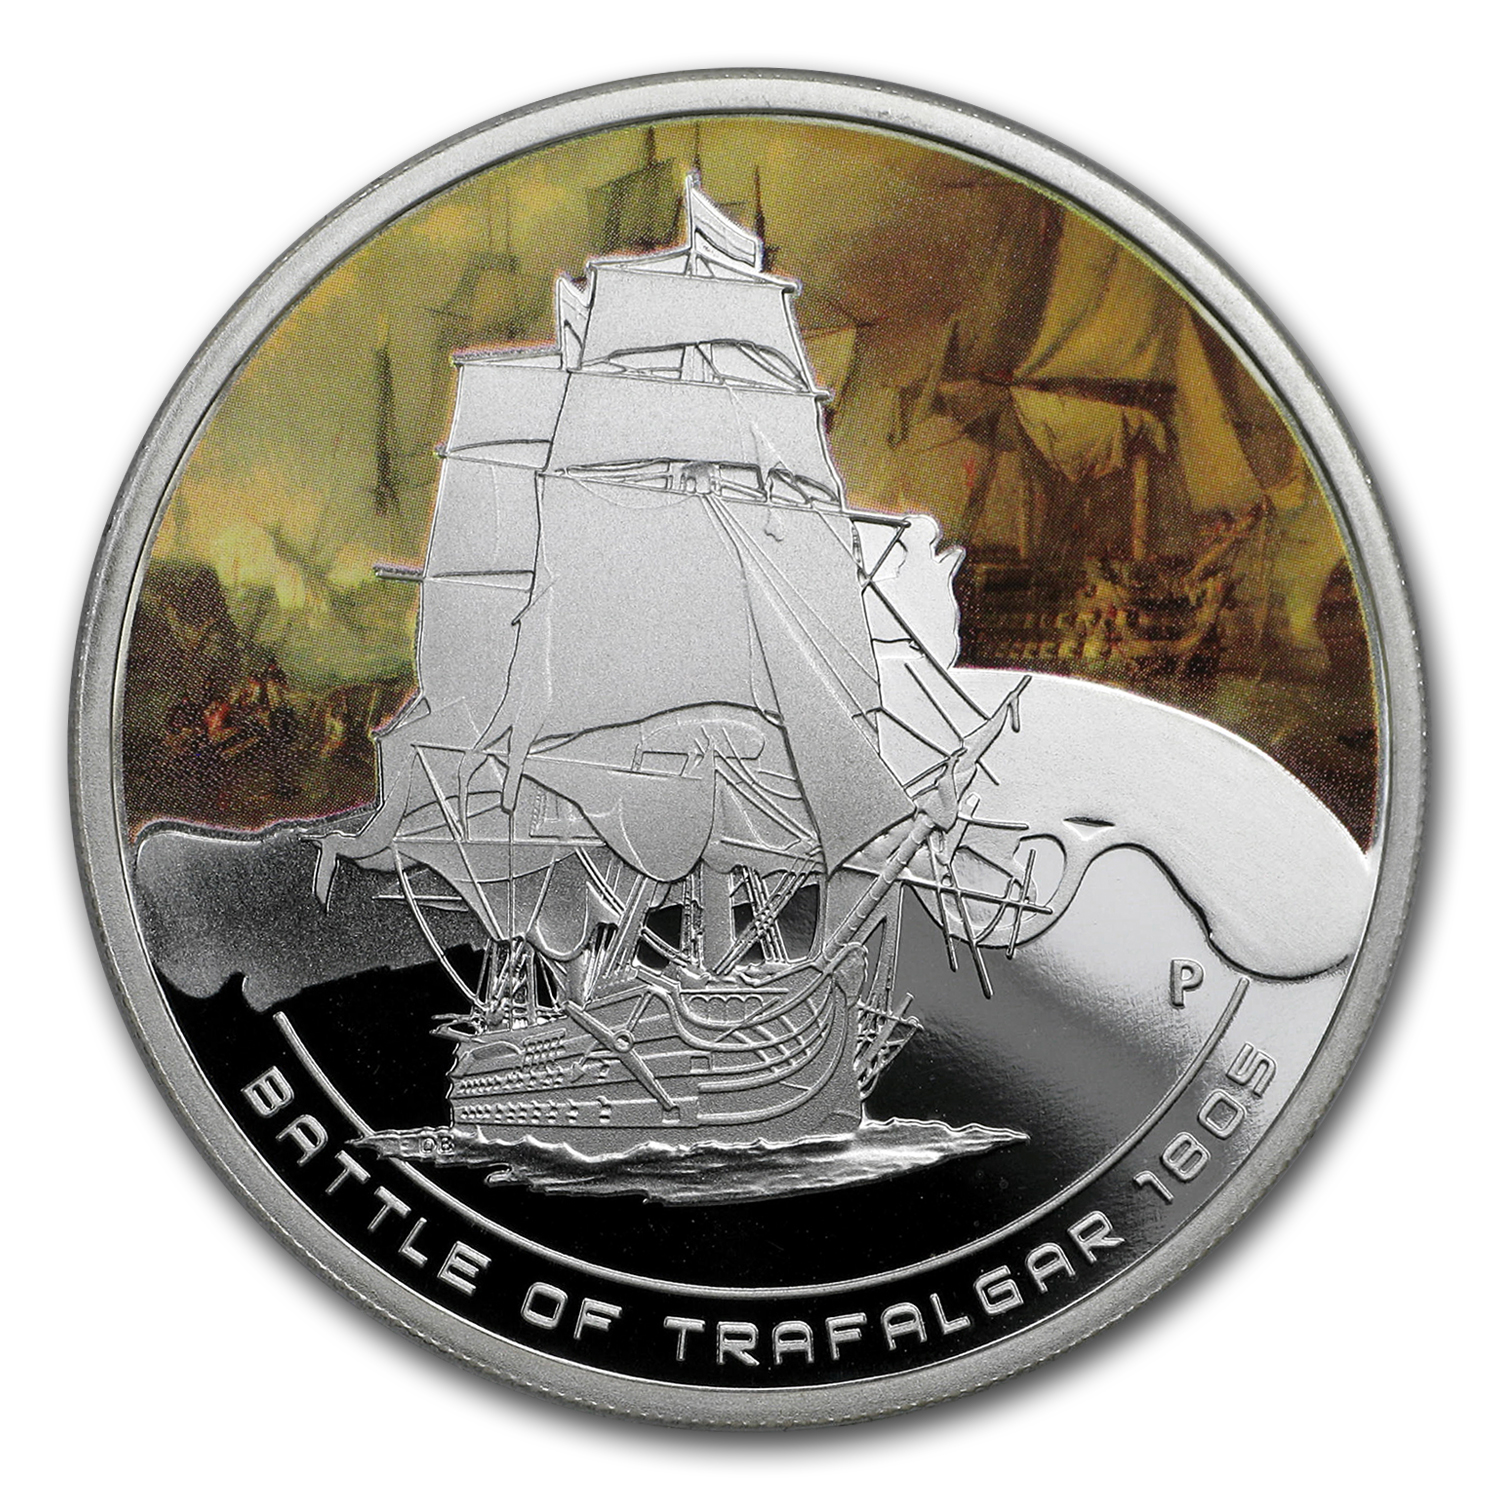 2010 1 oz Proof Silver Naval Battles Battle of Trafalgar